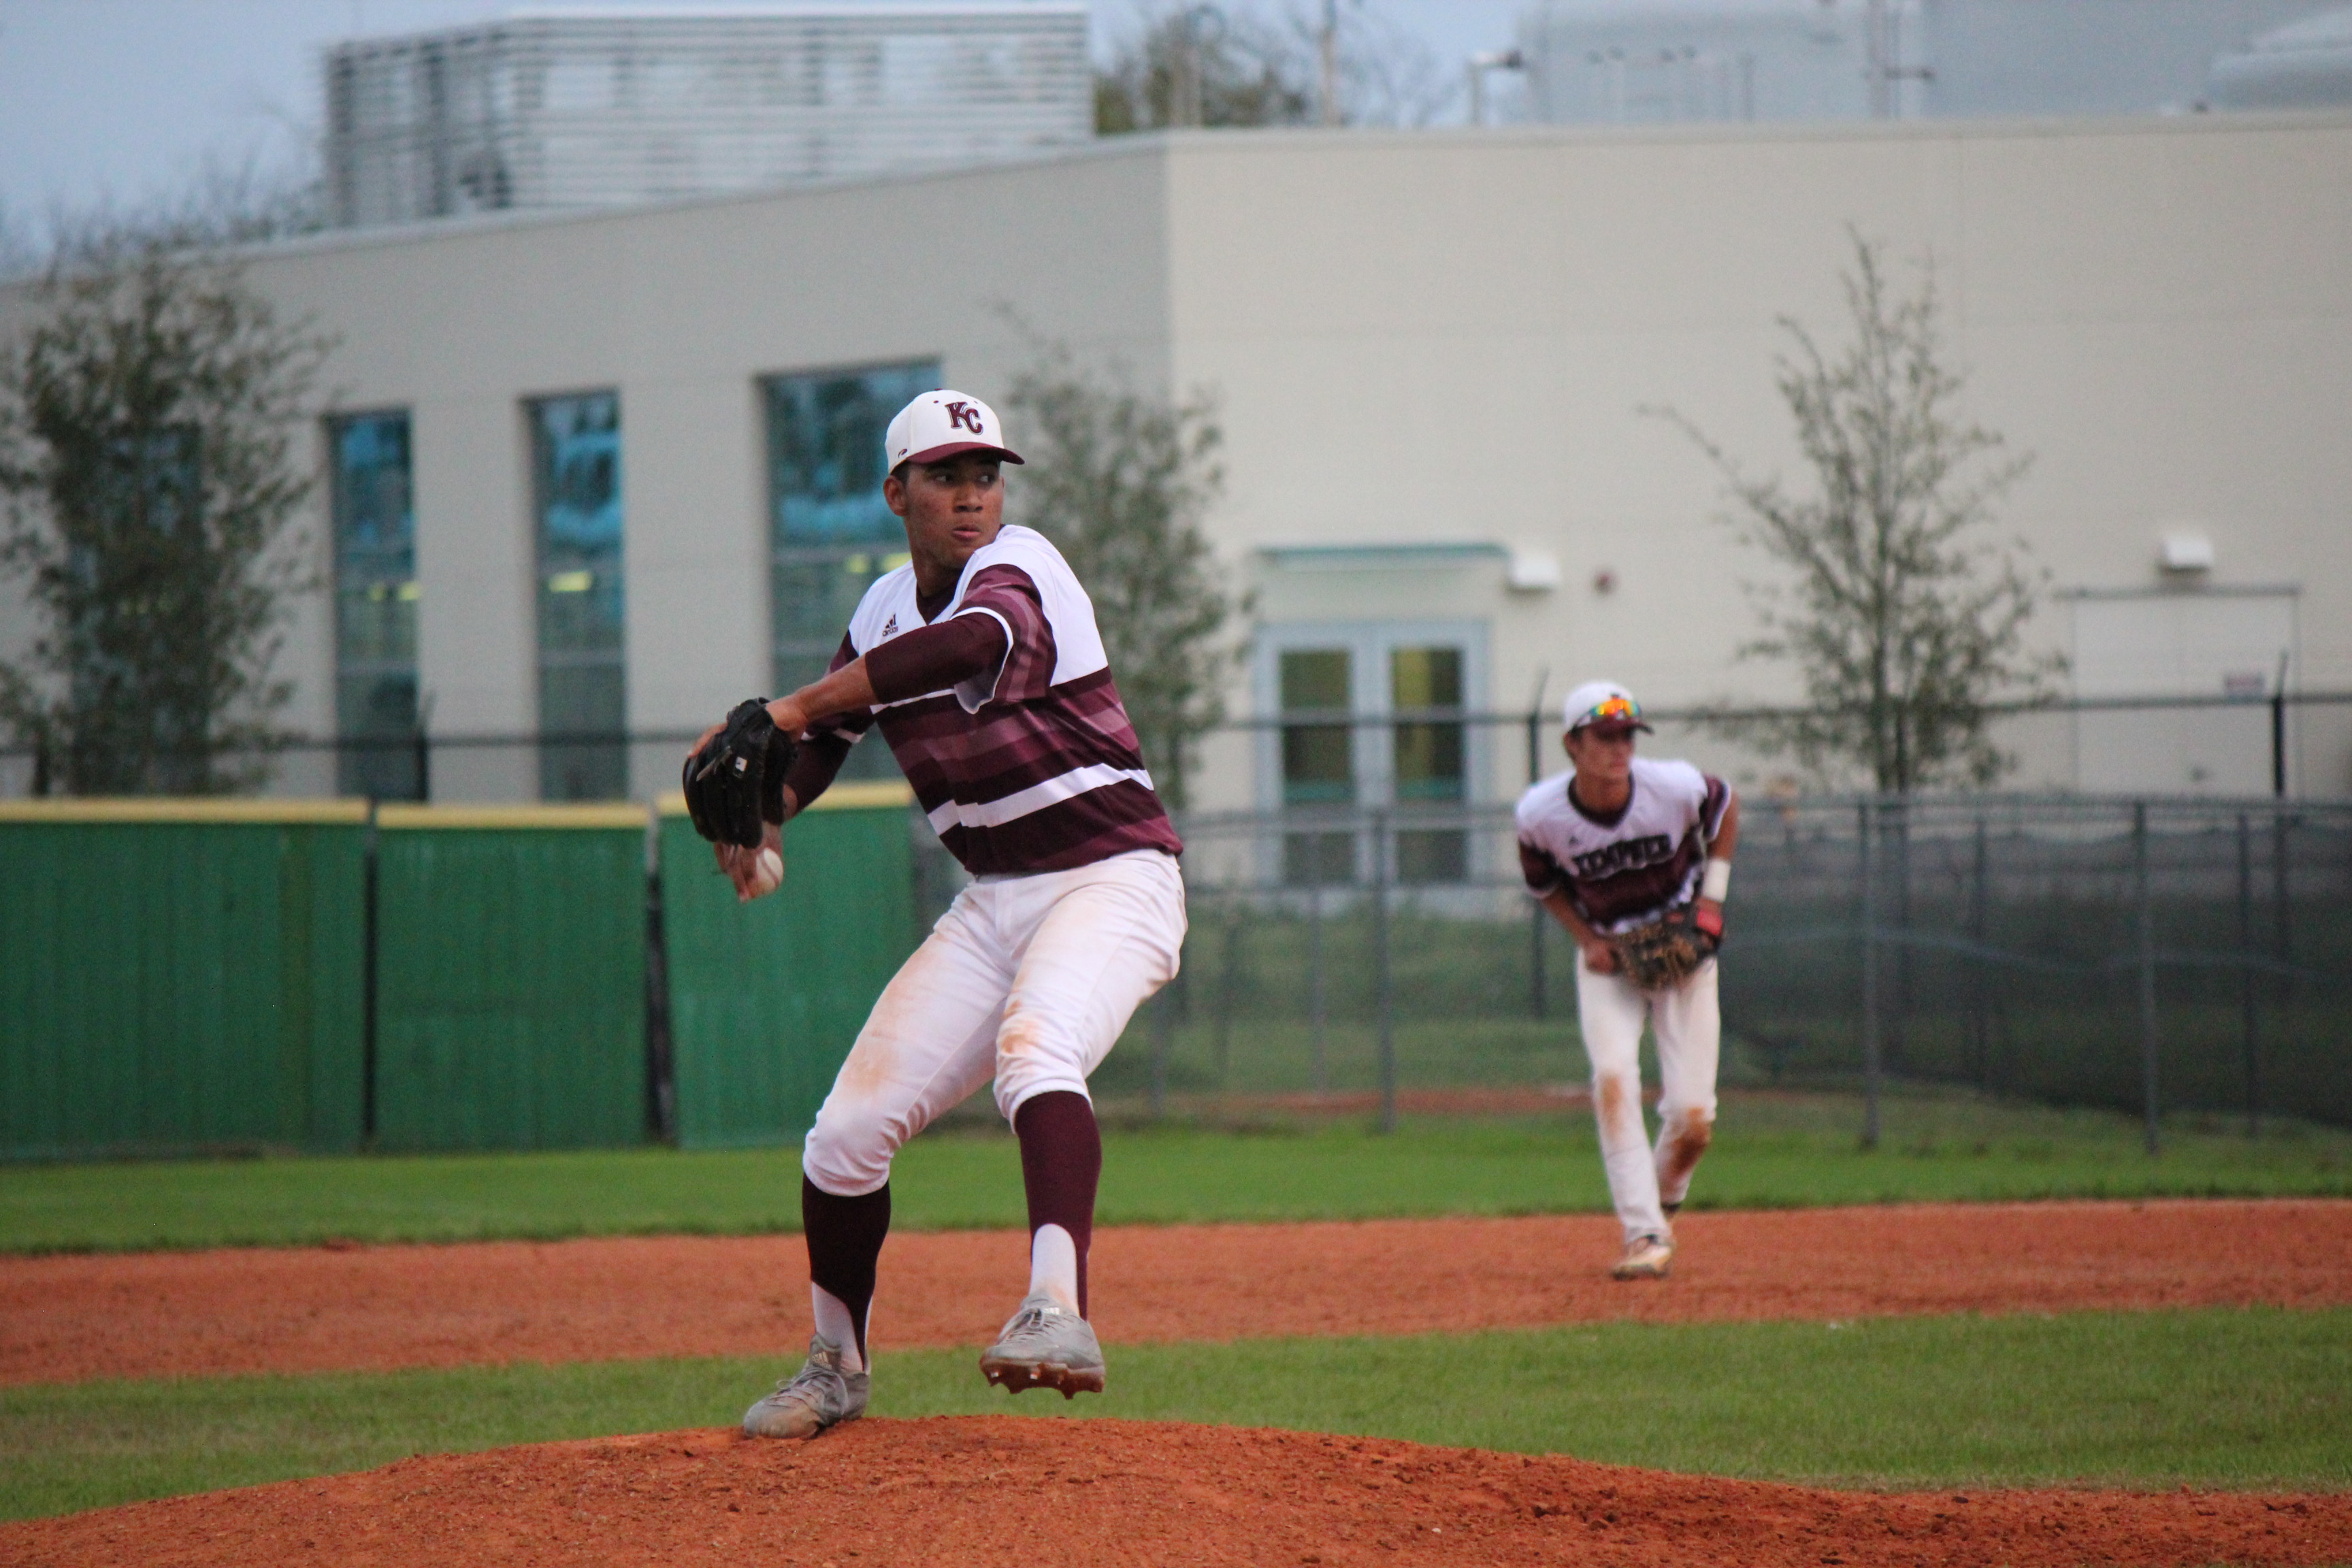 Simeon Woods Drafted in 2nd Round of MLB Draft